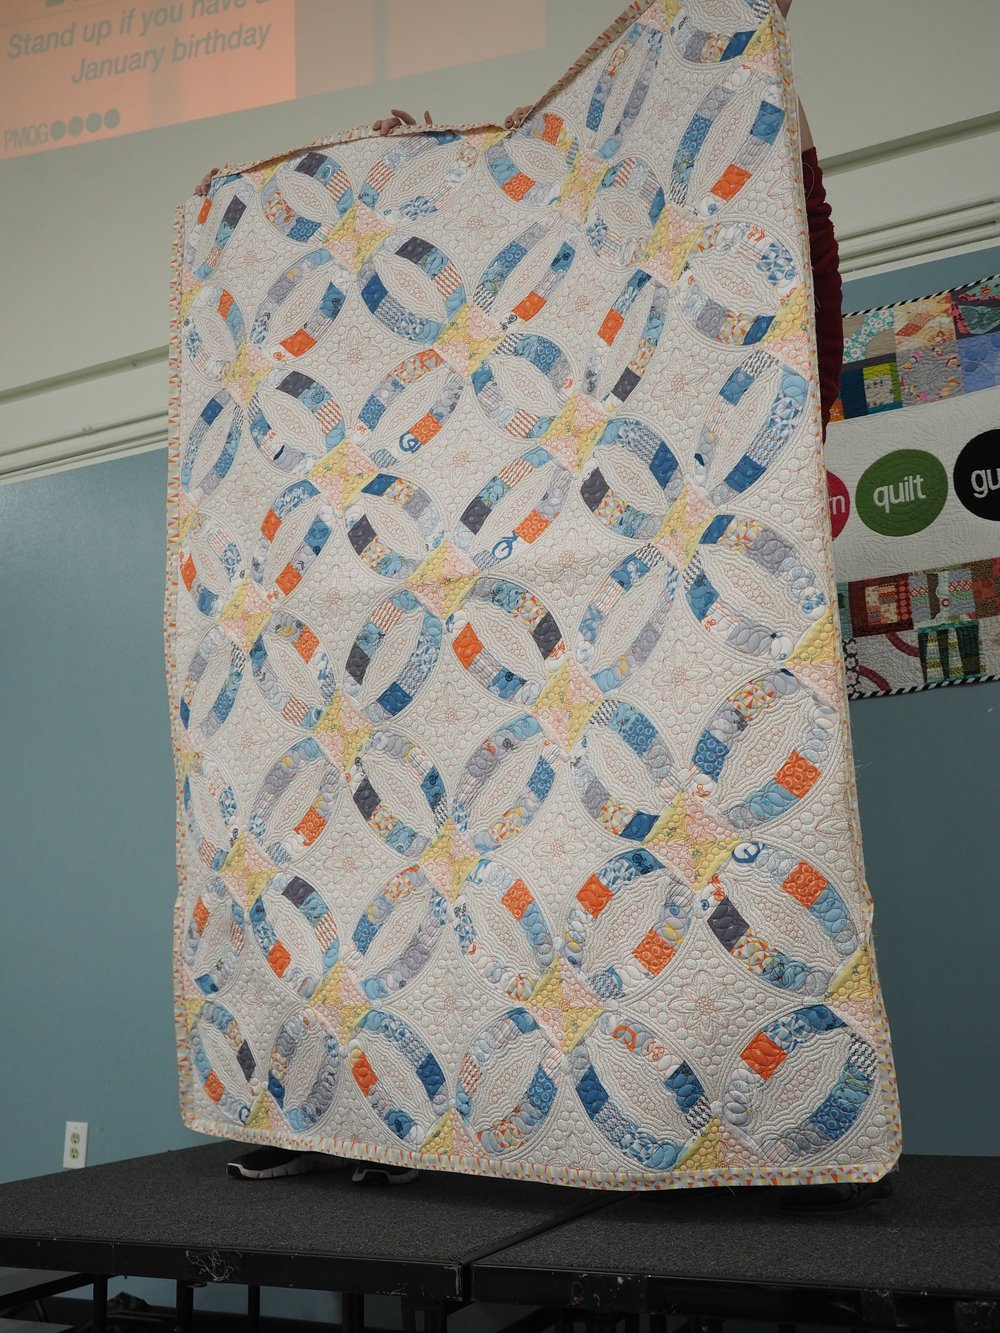 Erin and Ben's Wedding Quilt